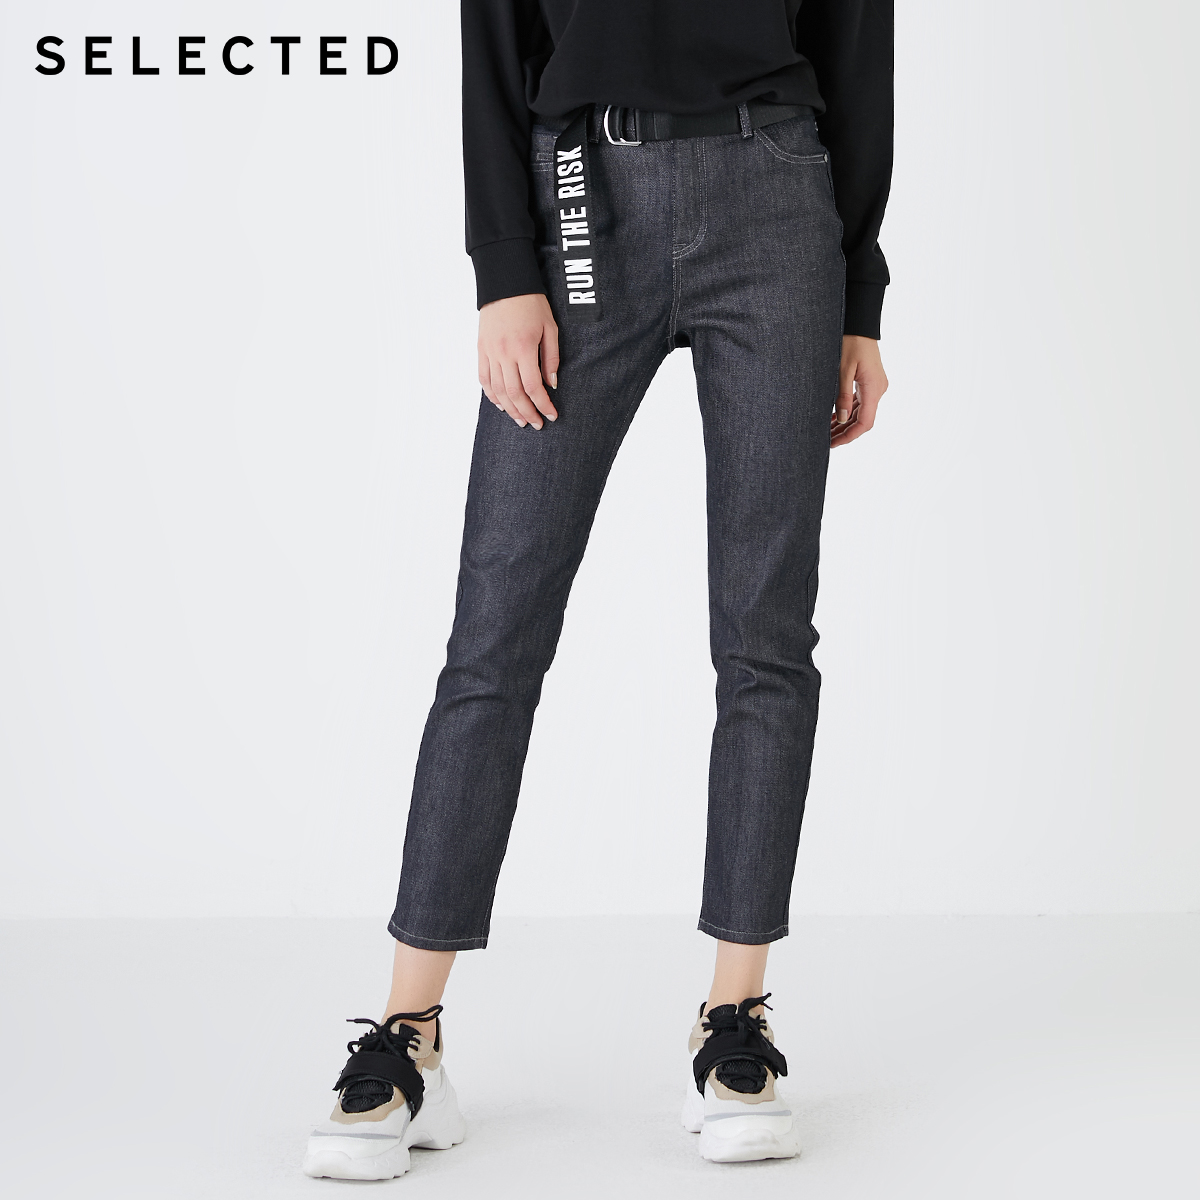 SELECTED Women's Slightly Stretch Straight Slim Fit High-rise Jeans R|419432506